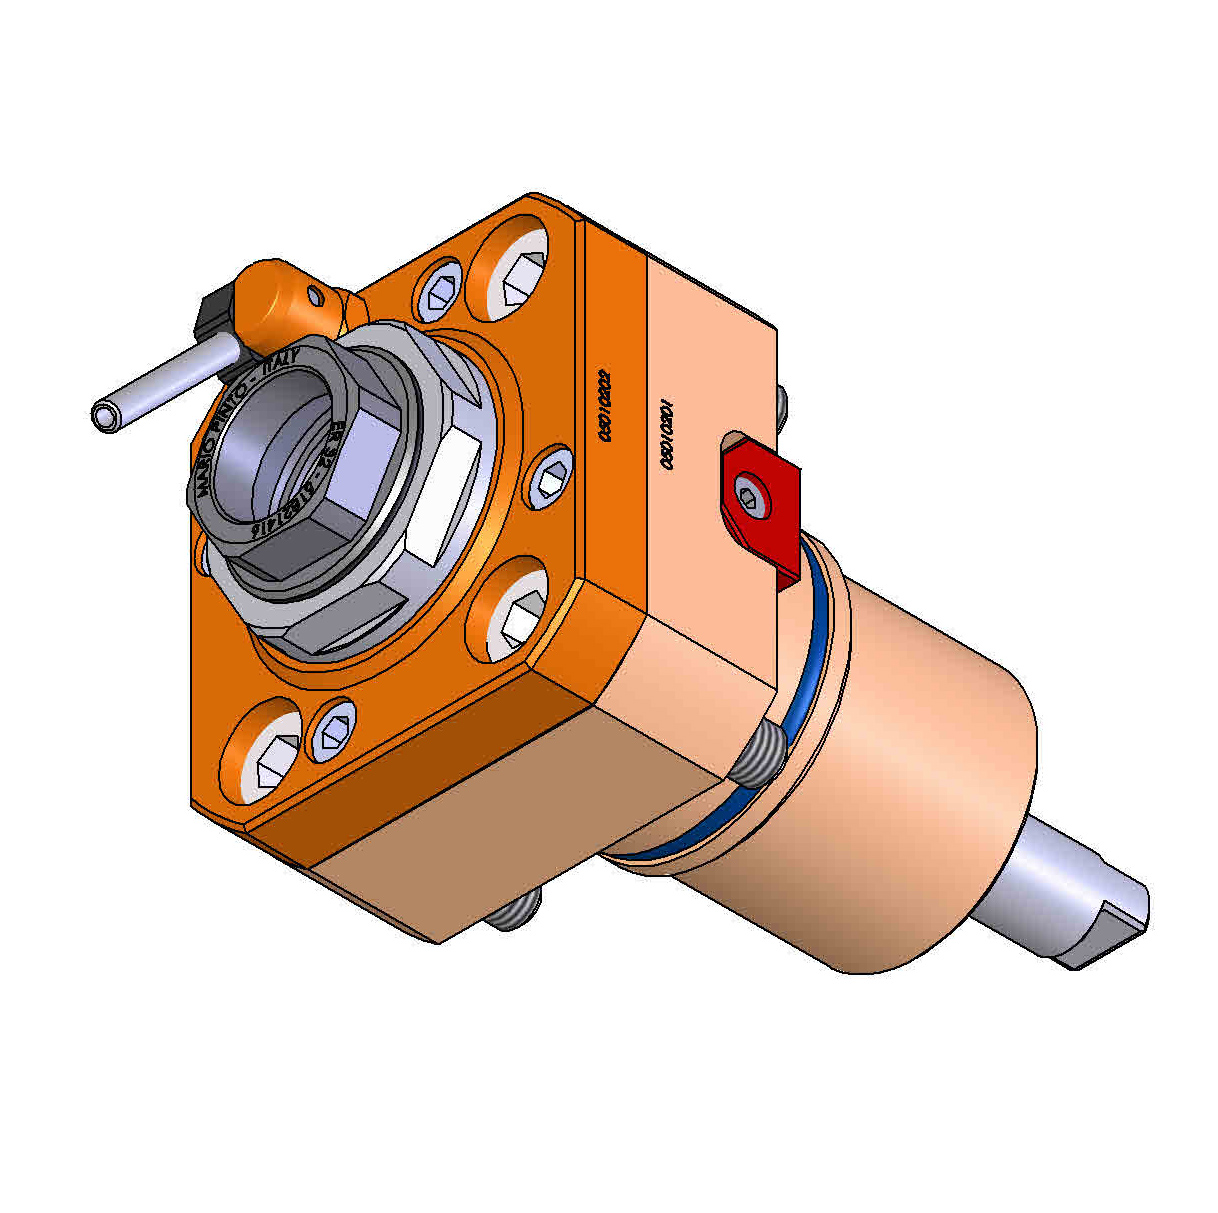 CYLINDRICAL SHANK 55 Driven Tool Holder.